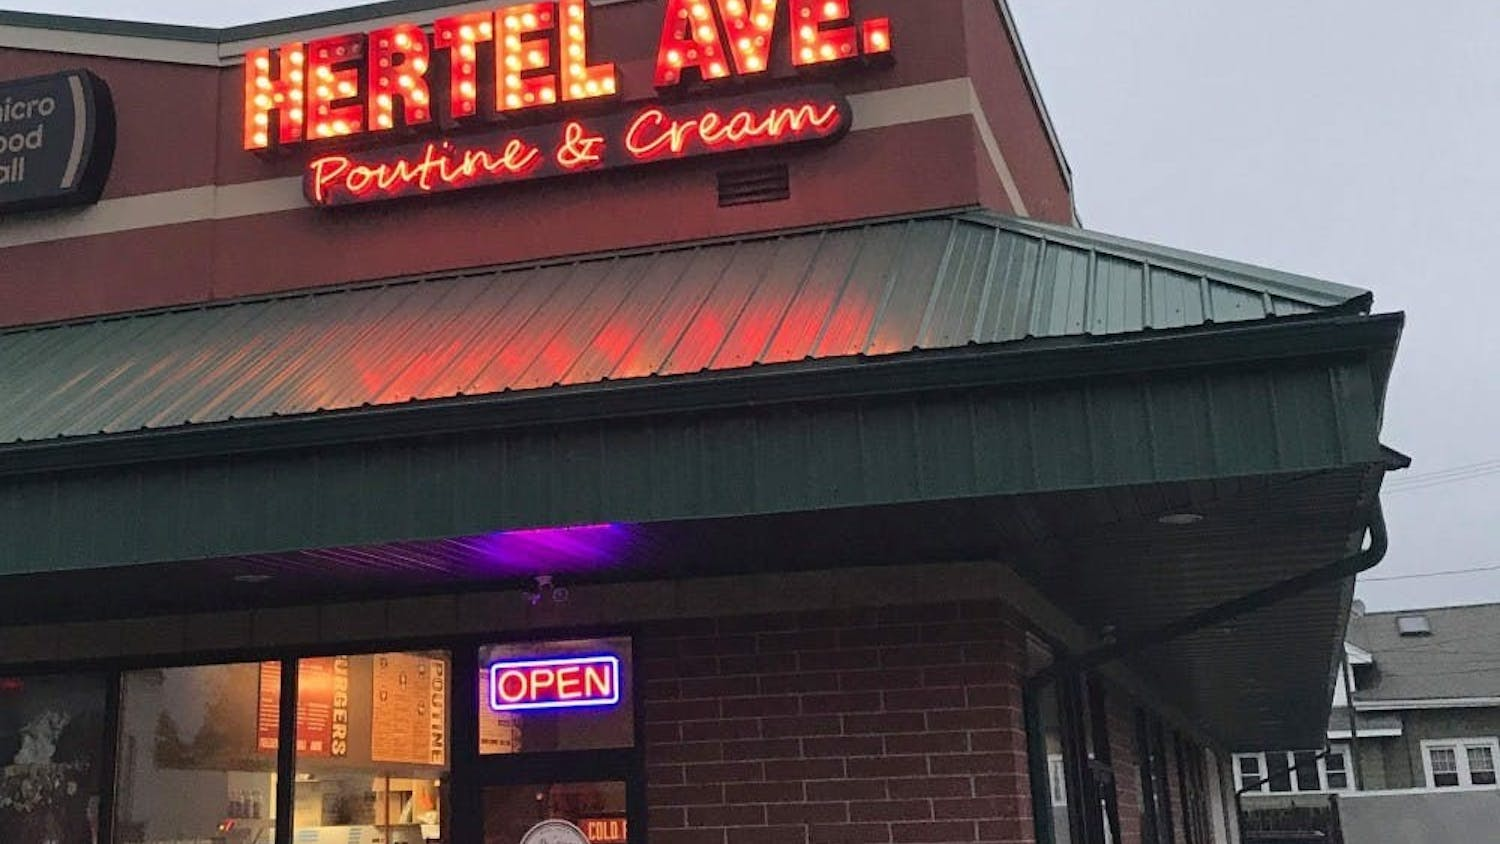 Students craving Canadian cuisine should visit Poutine and Cream, a popular spot on Hertel Avenue featuring poutine, cheese curds and french fries drenched in gravy.